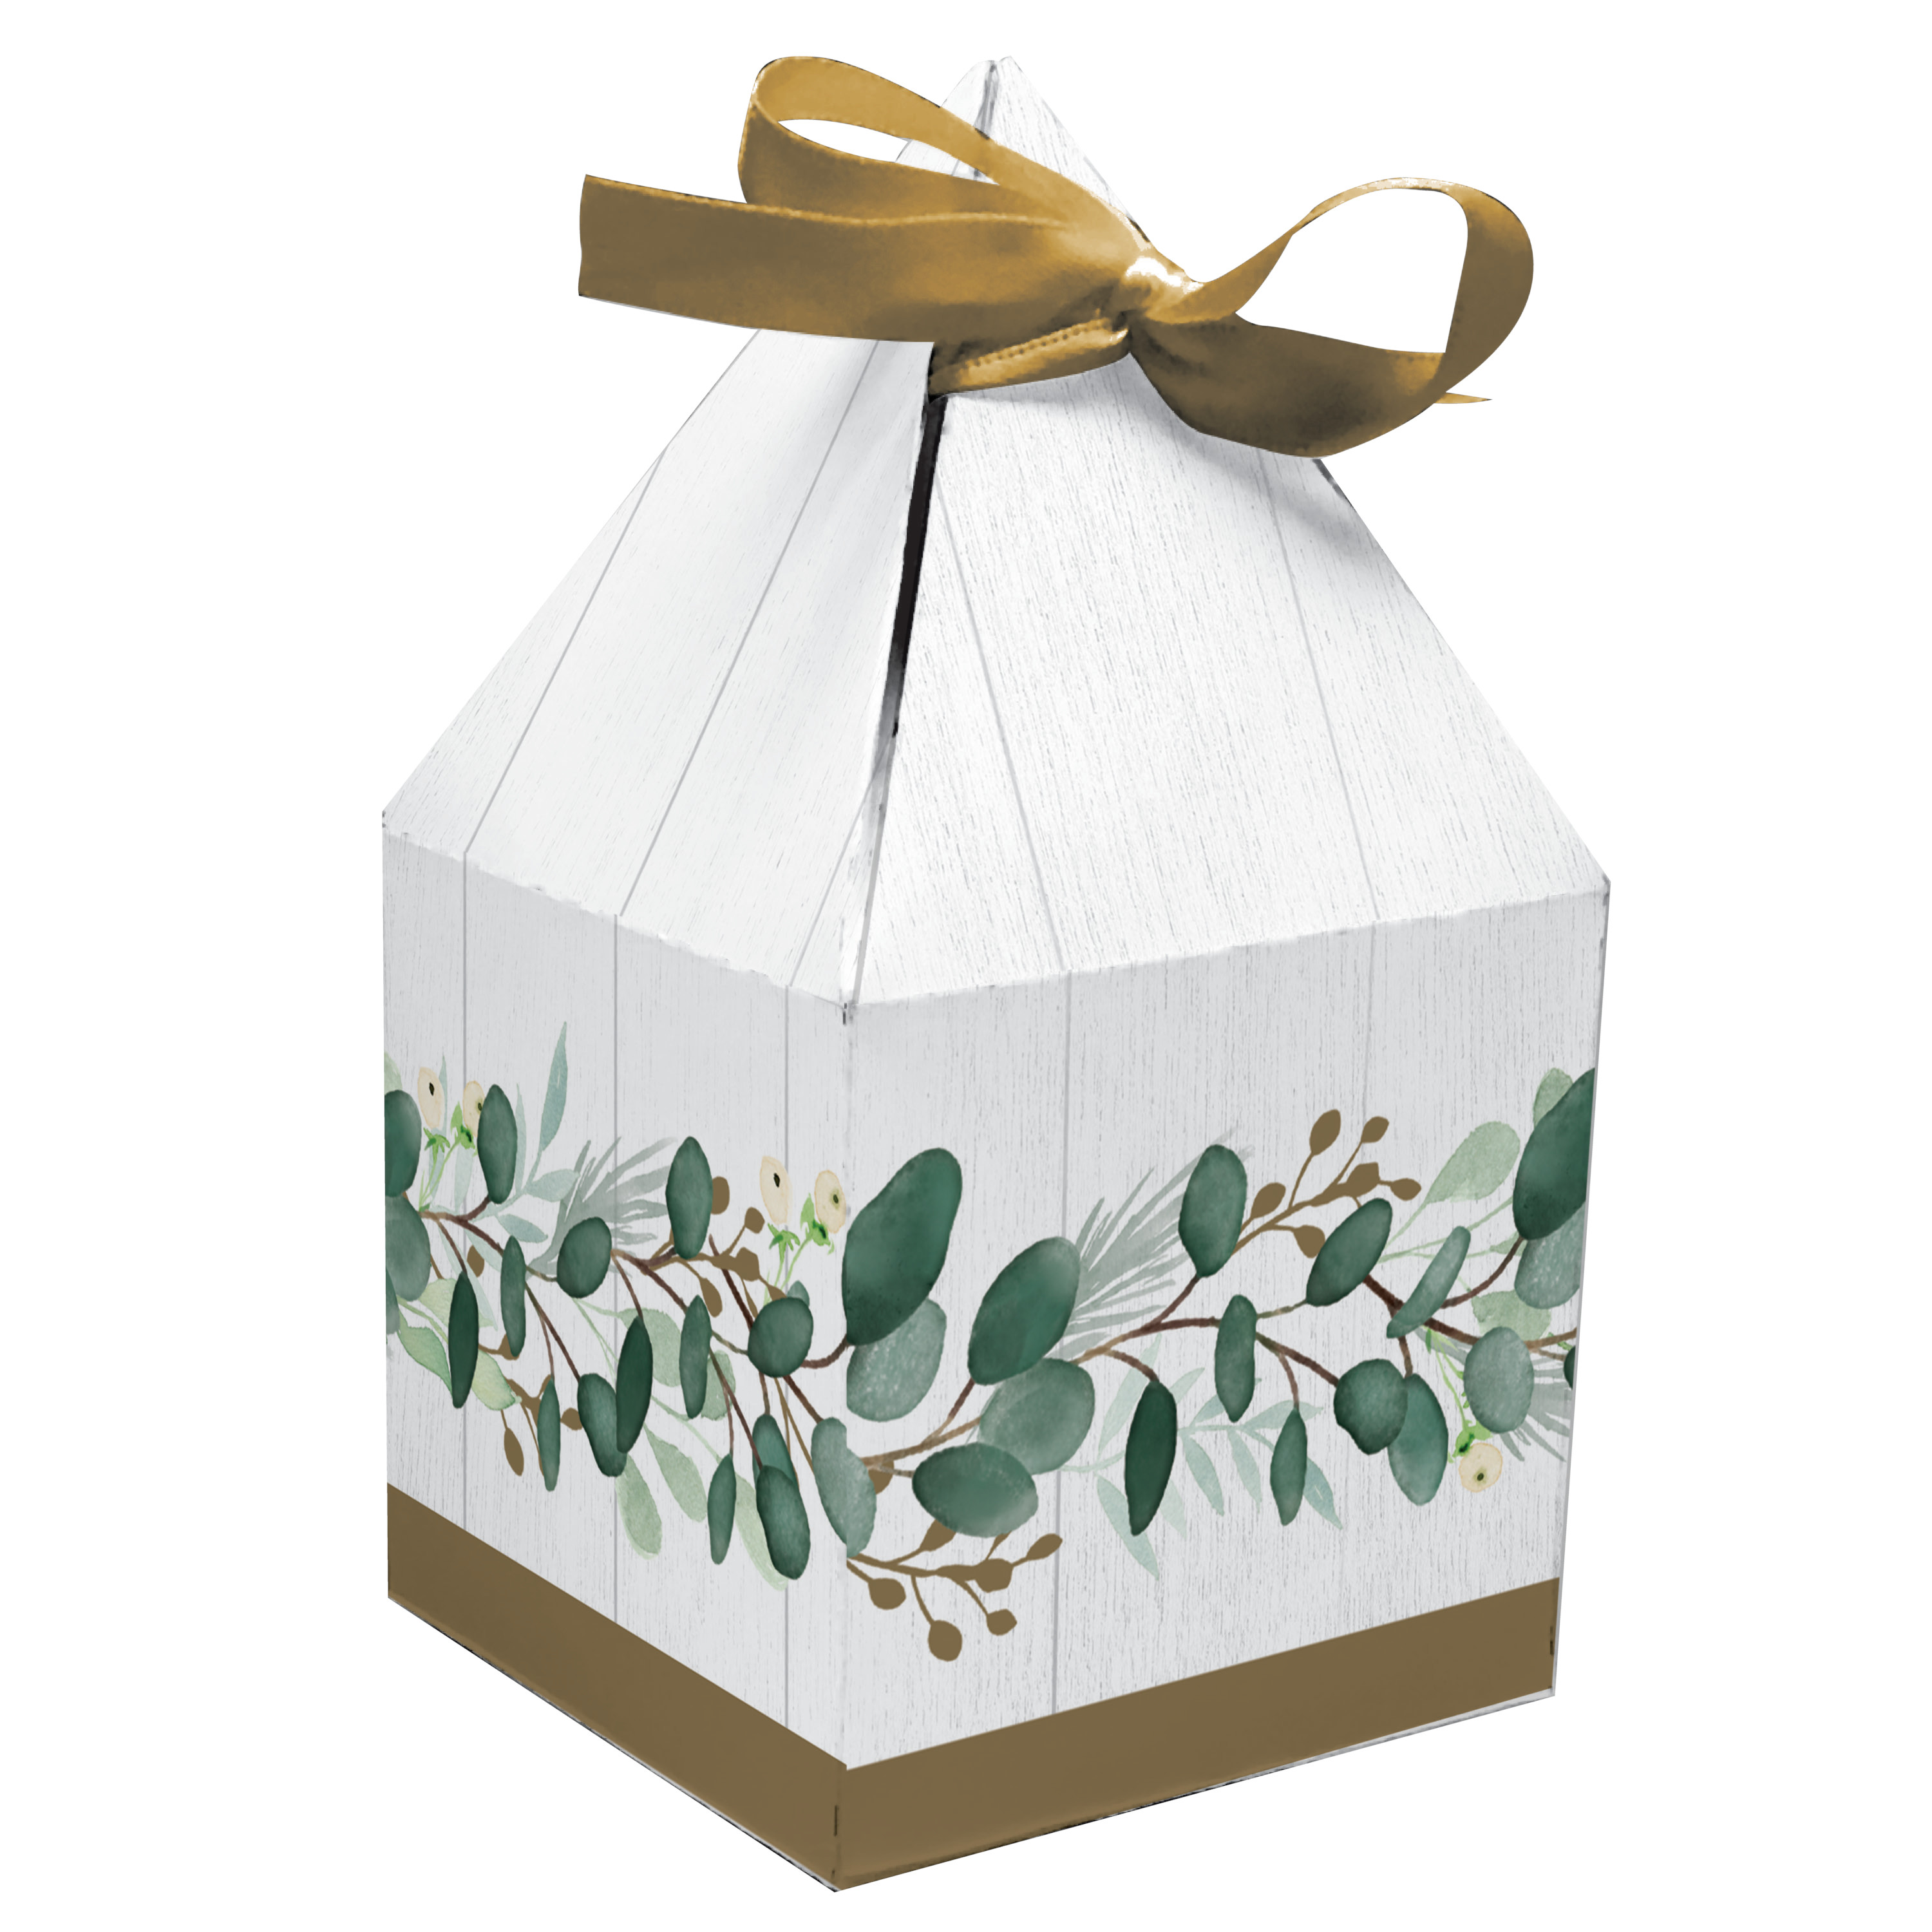 Eucalyptus Favor Boxes 24 Count For 24 Guests Walmart Com Walmart Com